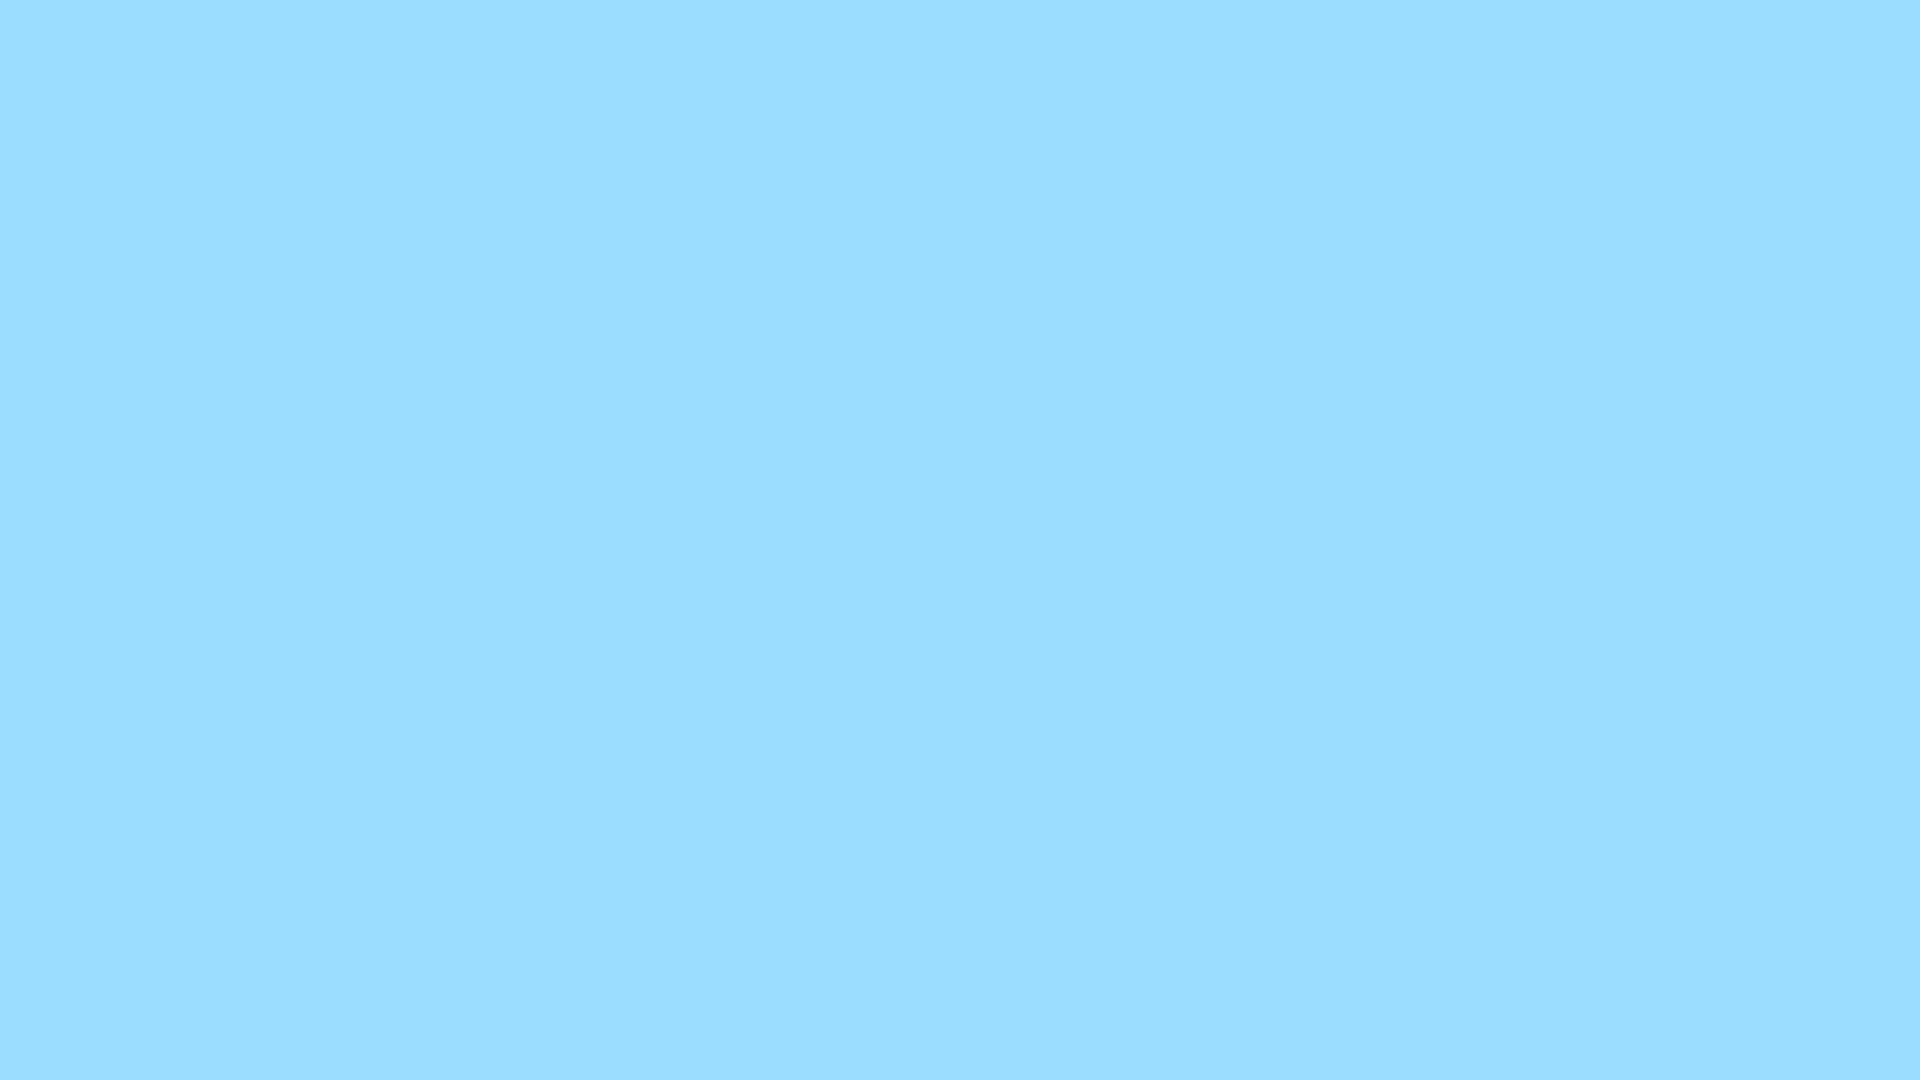 1920x1080 Columbia Blue Solid Color Background